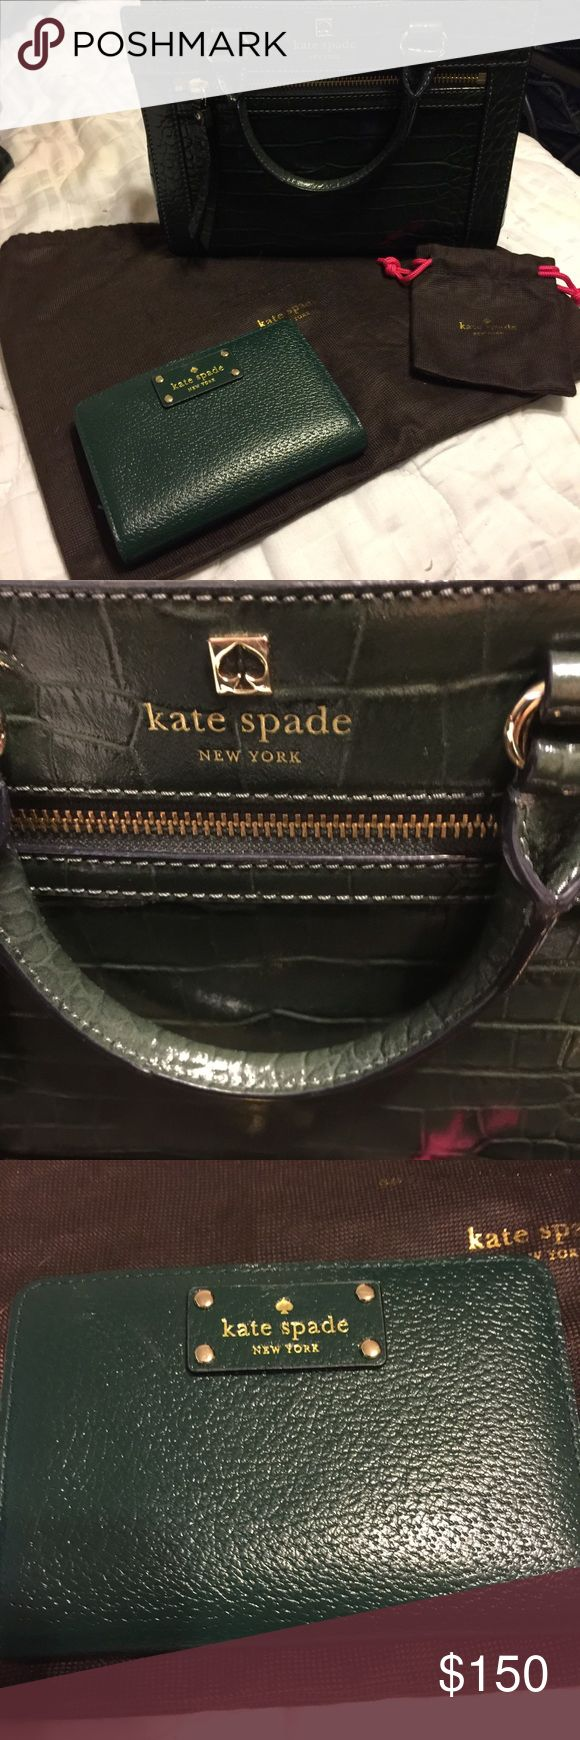 Kate Spade ♠️ crossbody Brand new never used cross body and matching wallet just in time for summer this stunning ensemble would be great for the fashionista. Emerald green can be casual or dressed up for an evening out on the town. Price includes wallet so both at $150.00 or trade for Apple Watch kate spade Other